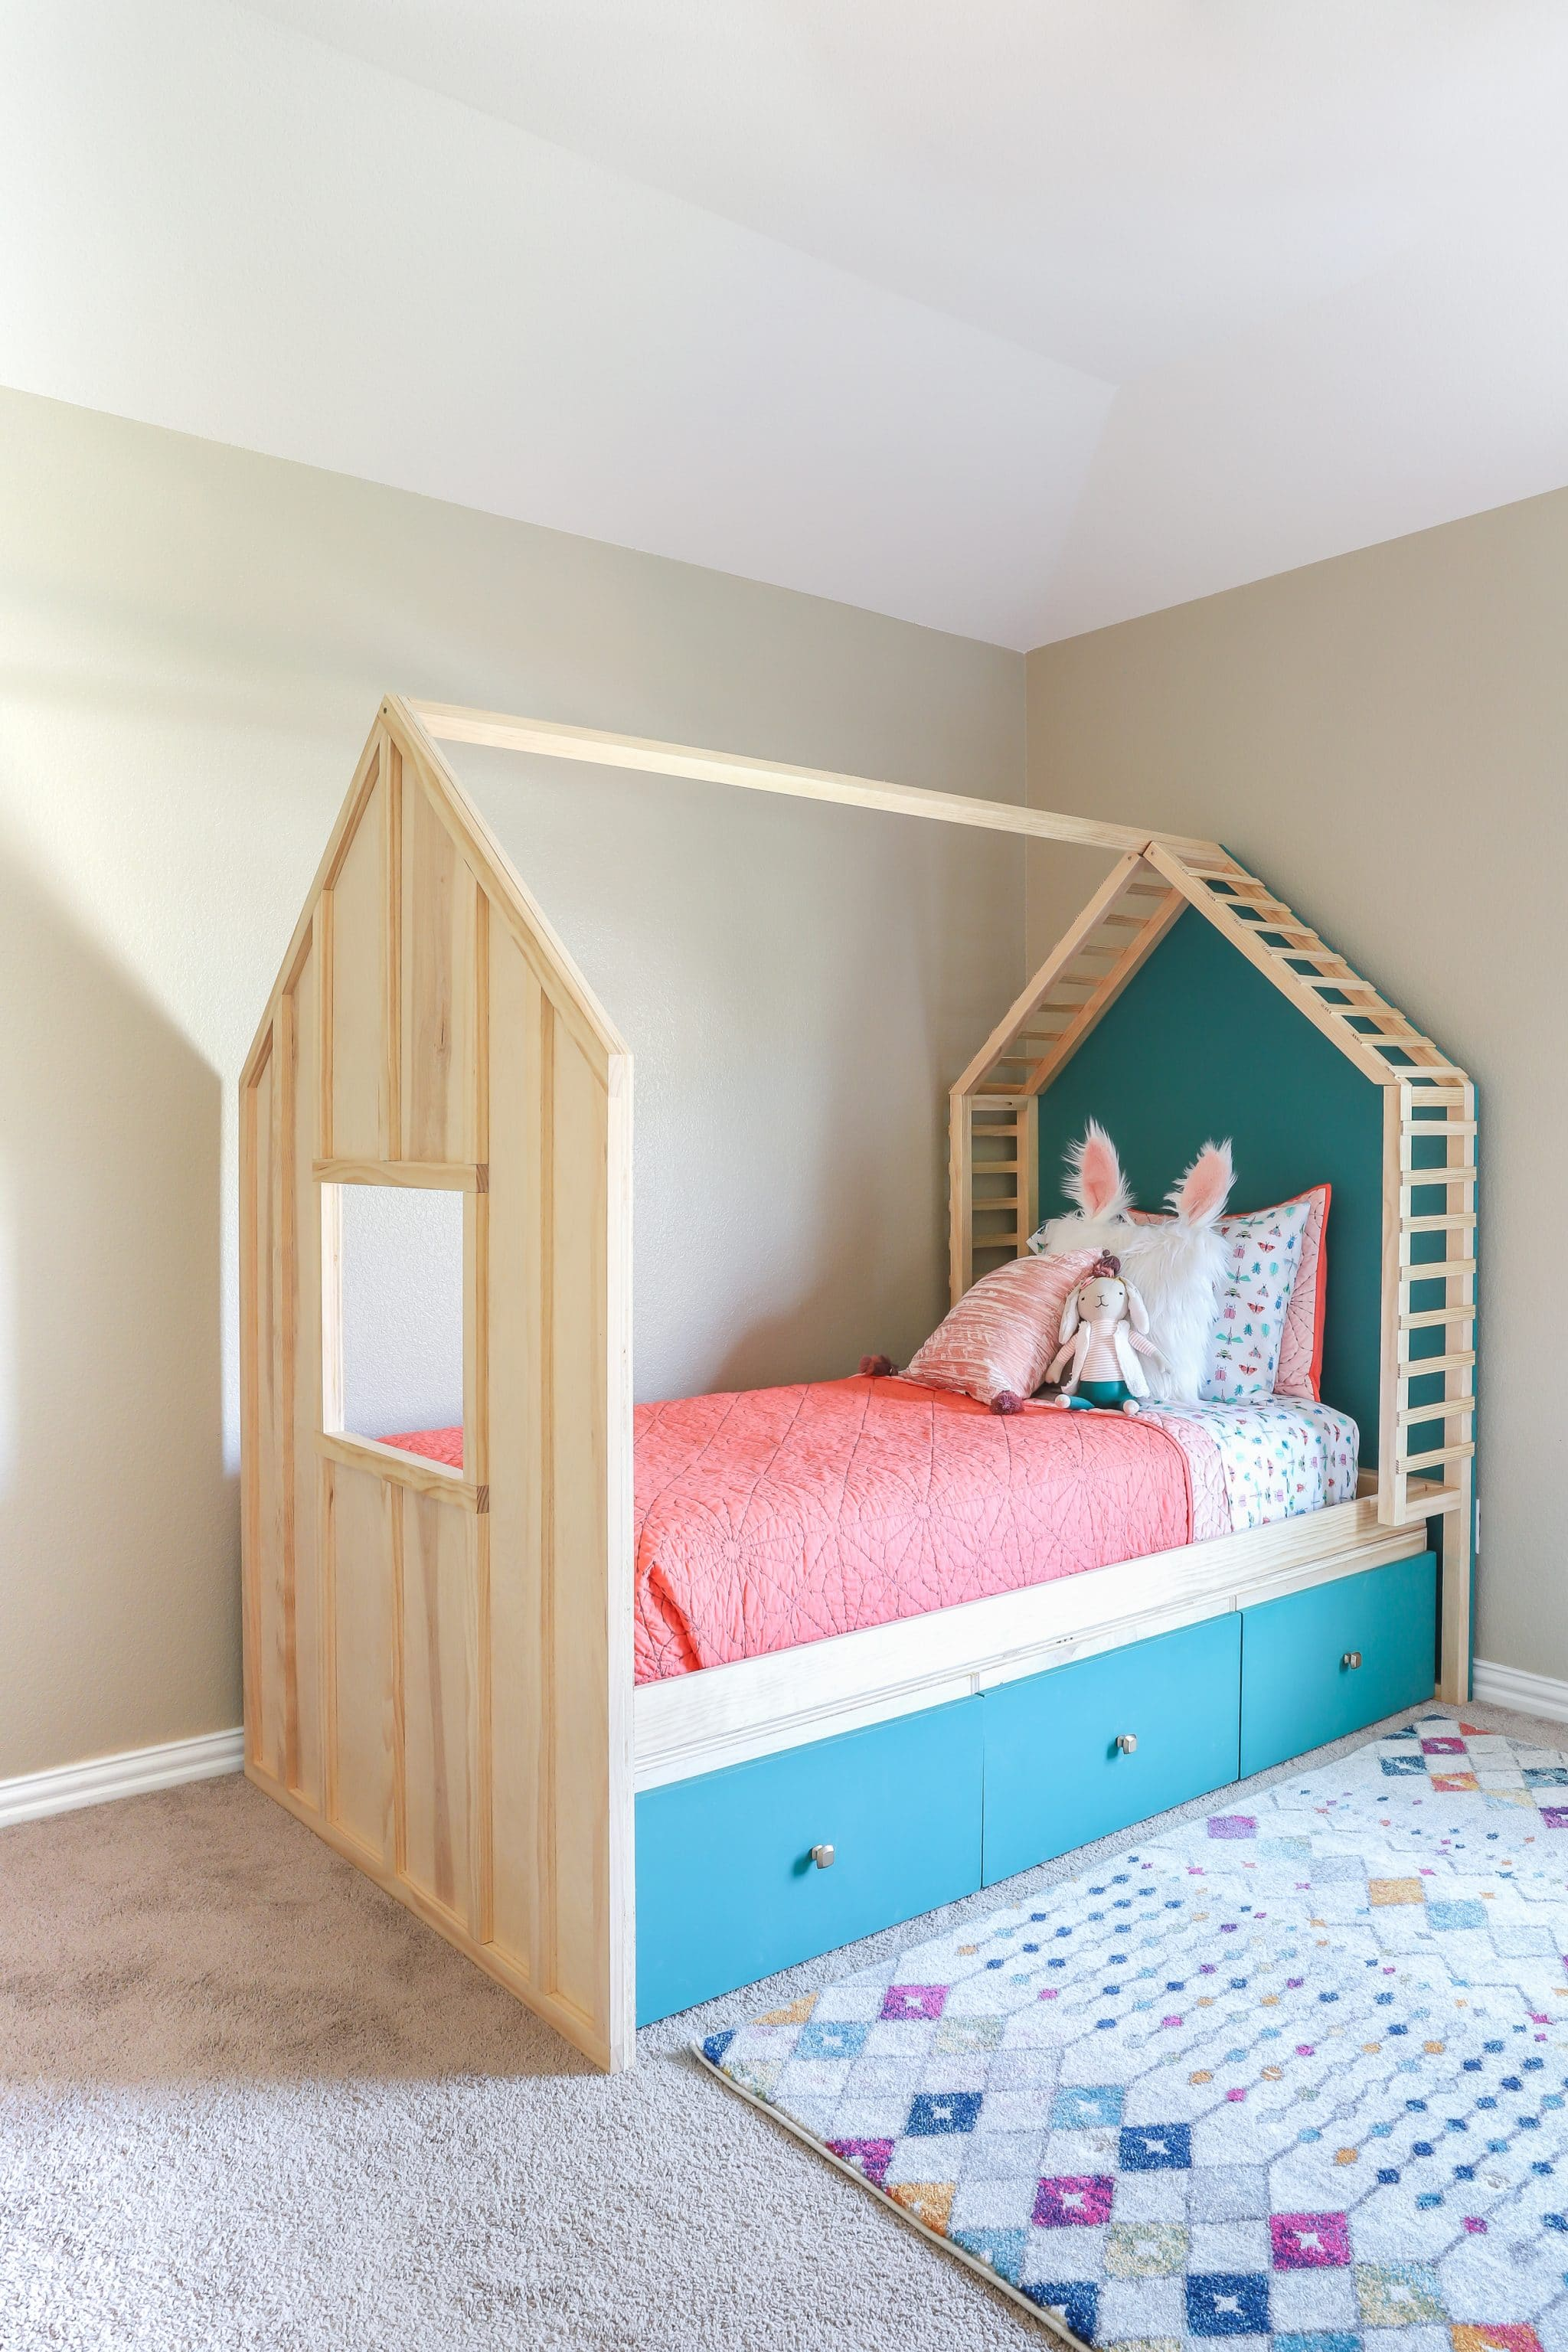 How to build a DIY kids house bed with storage